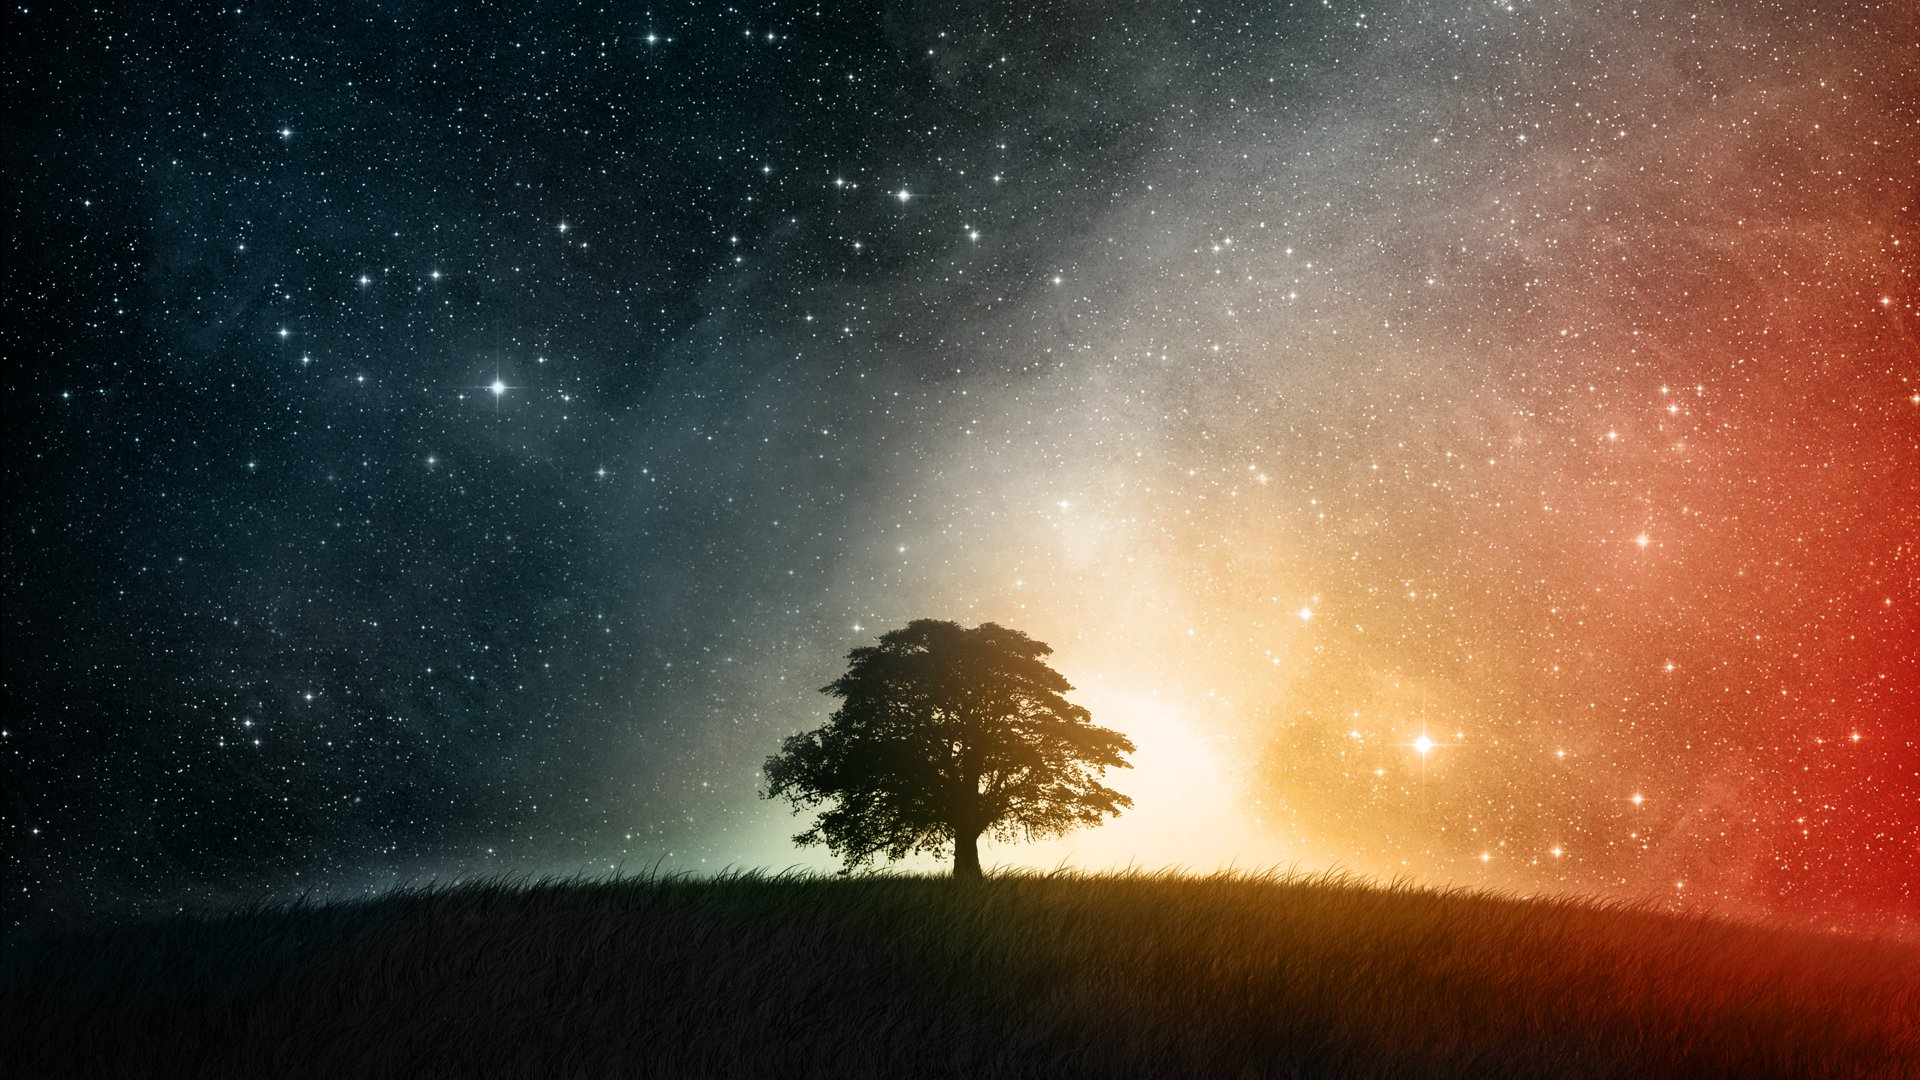 35 hd galaxy wallpapers for free download